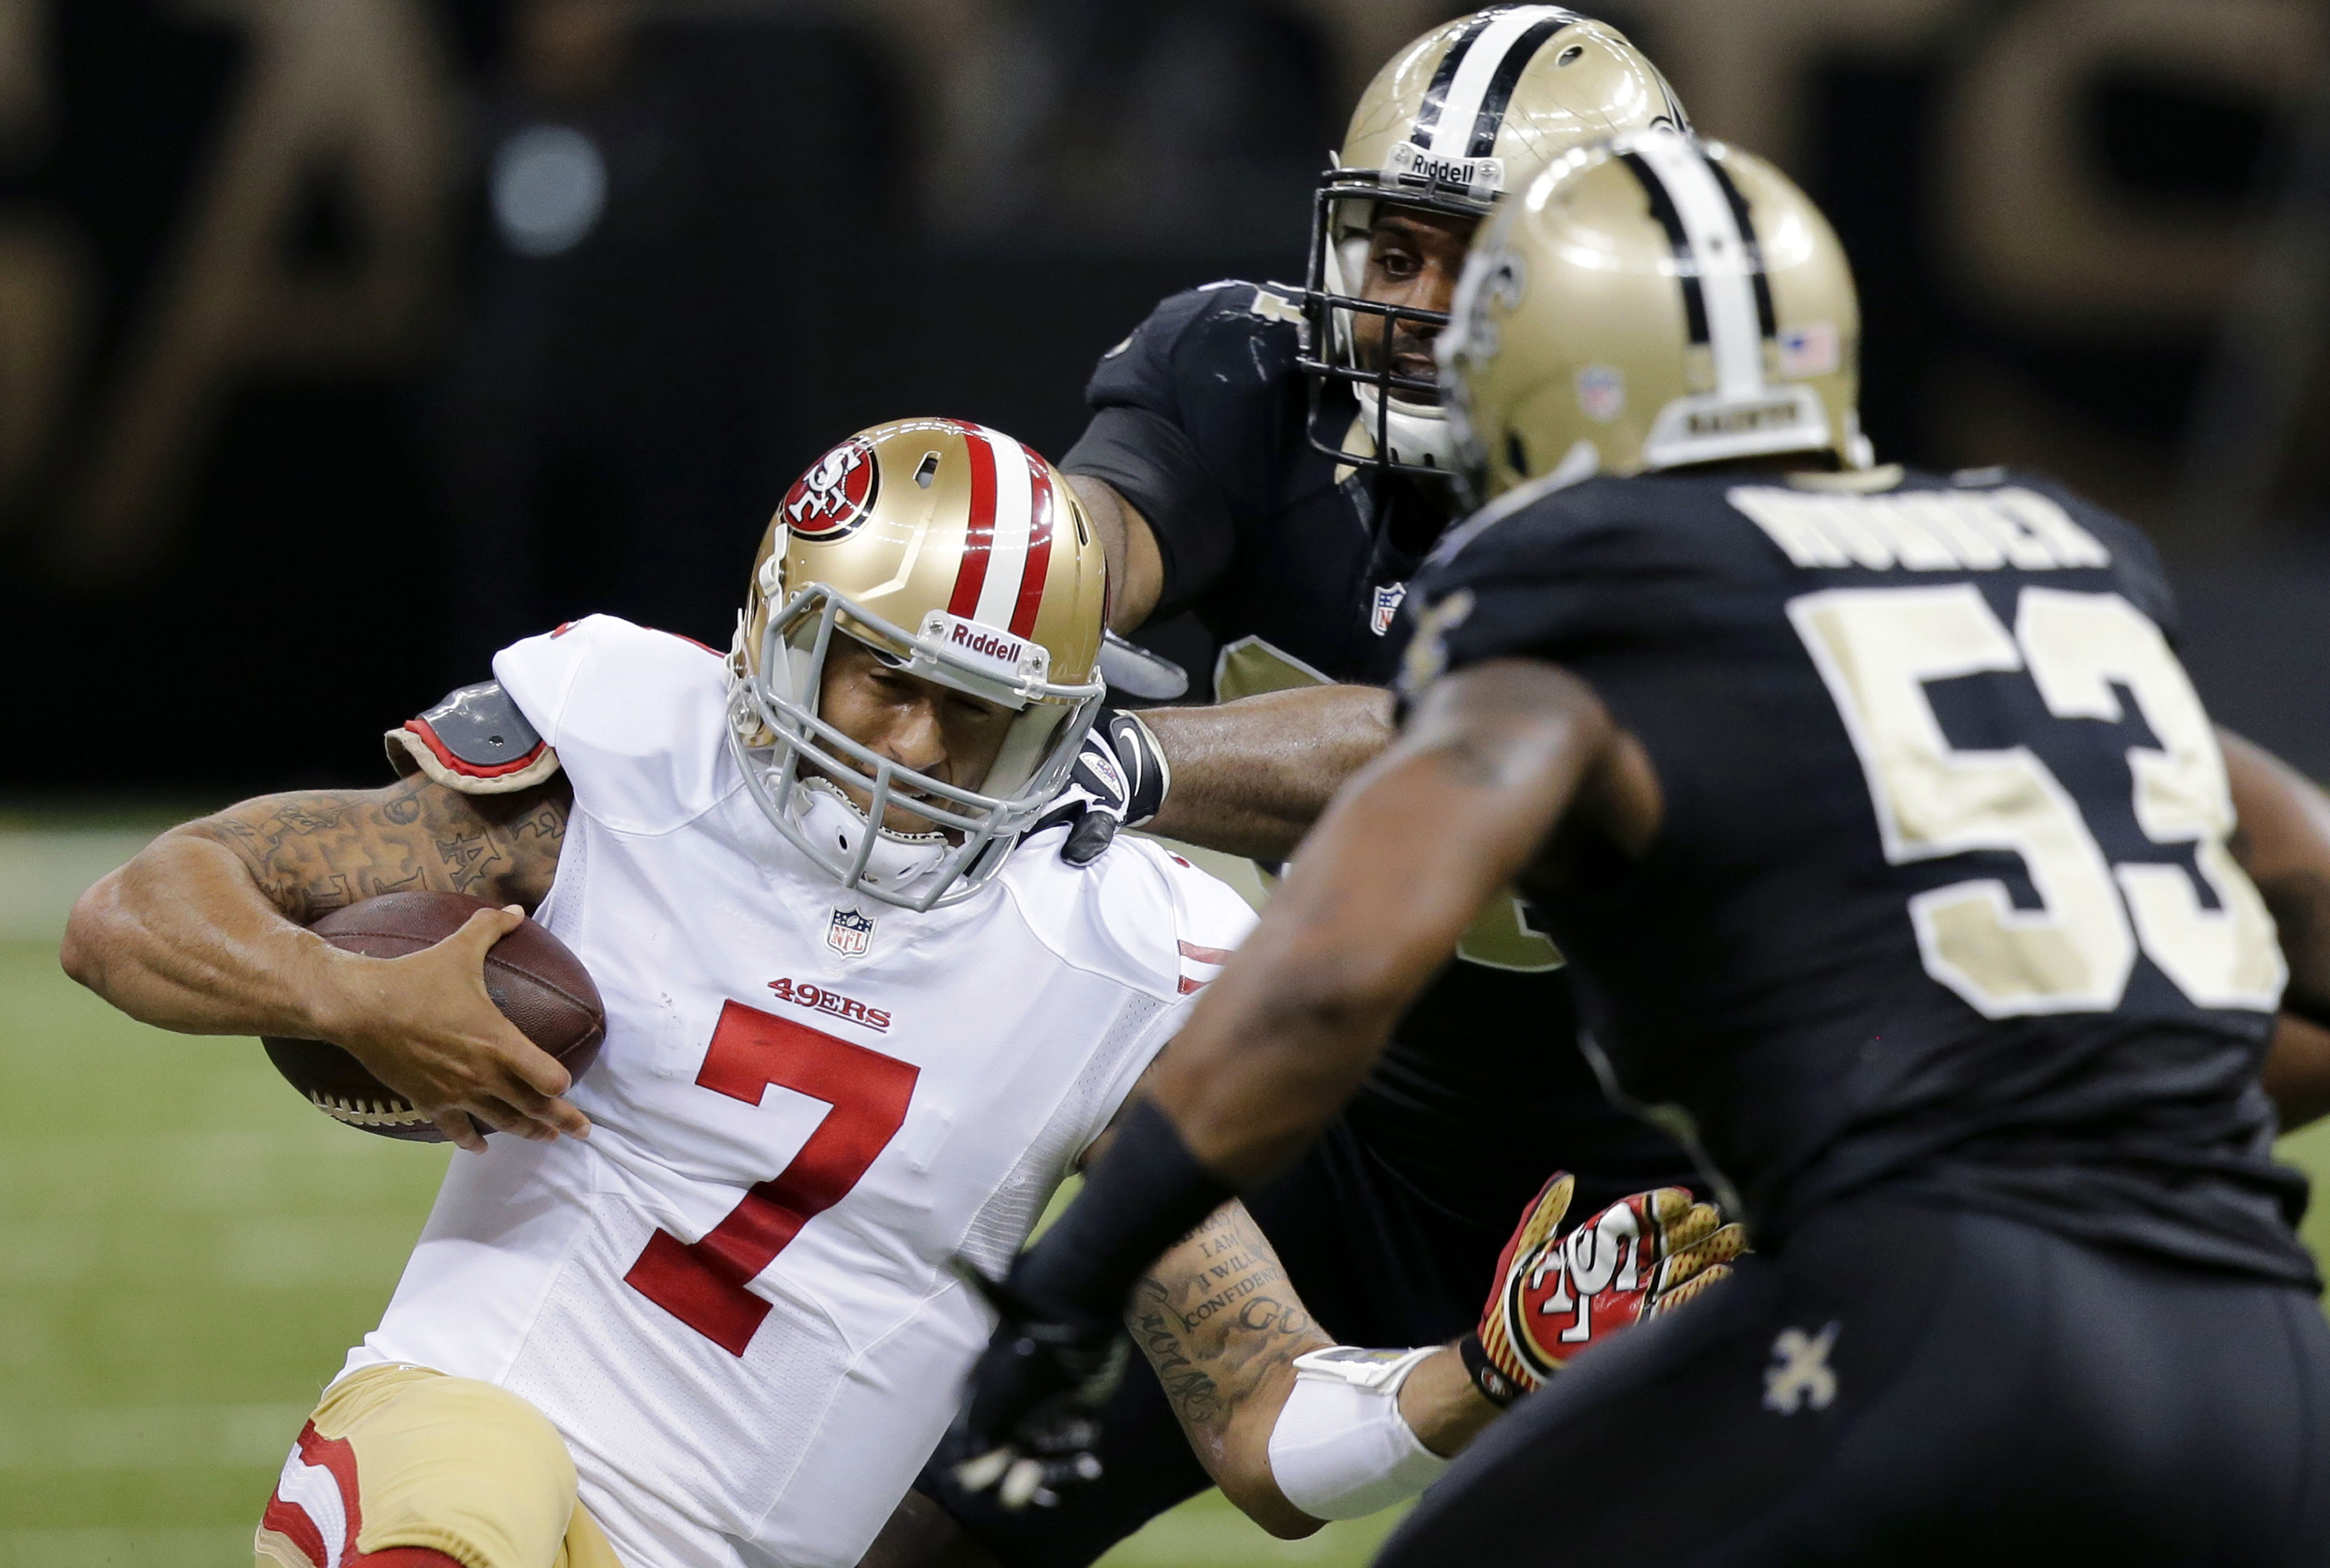 49ers offense looks to rediscover its groove